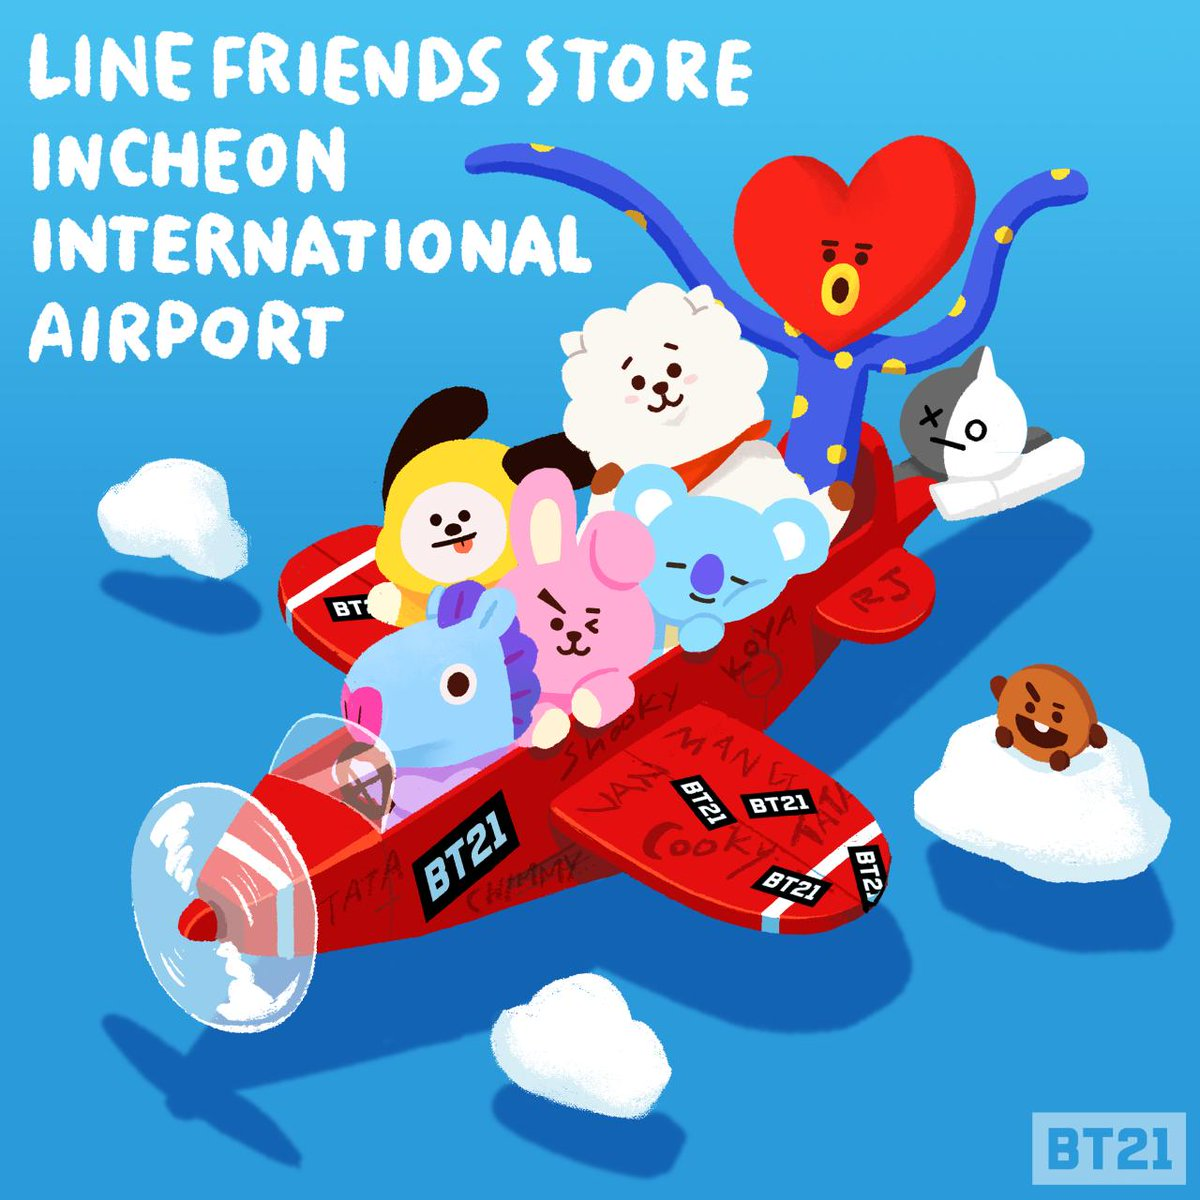 #BT21 all on board! Now available at #LI...